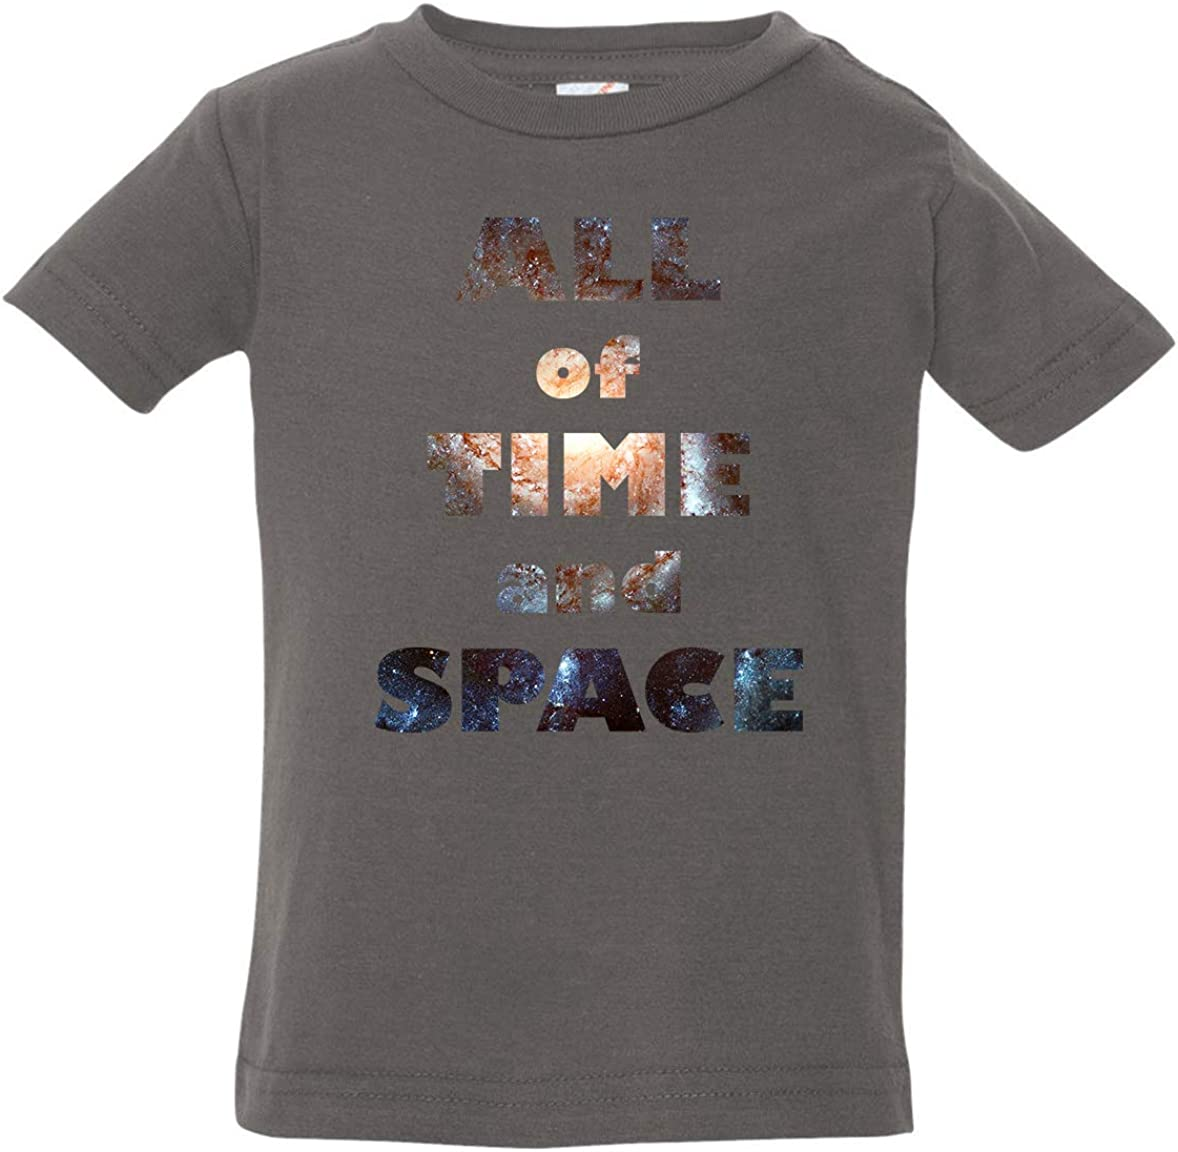 Tenacitee Babys All of Time and Space Shirt